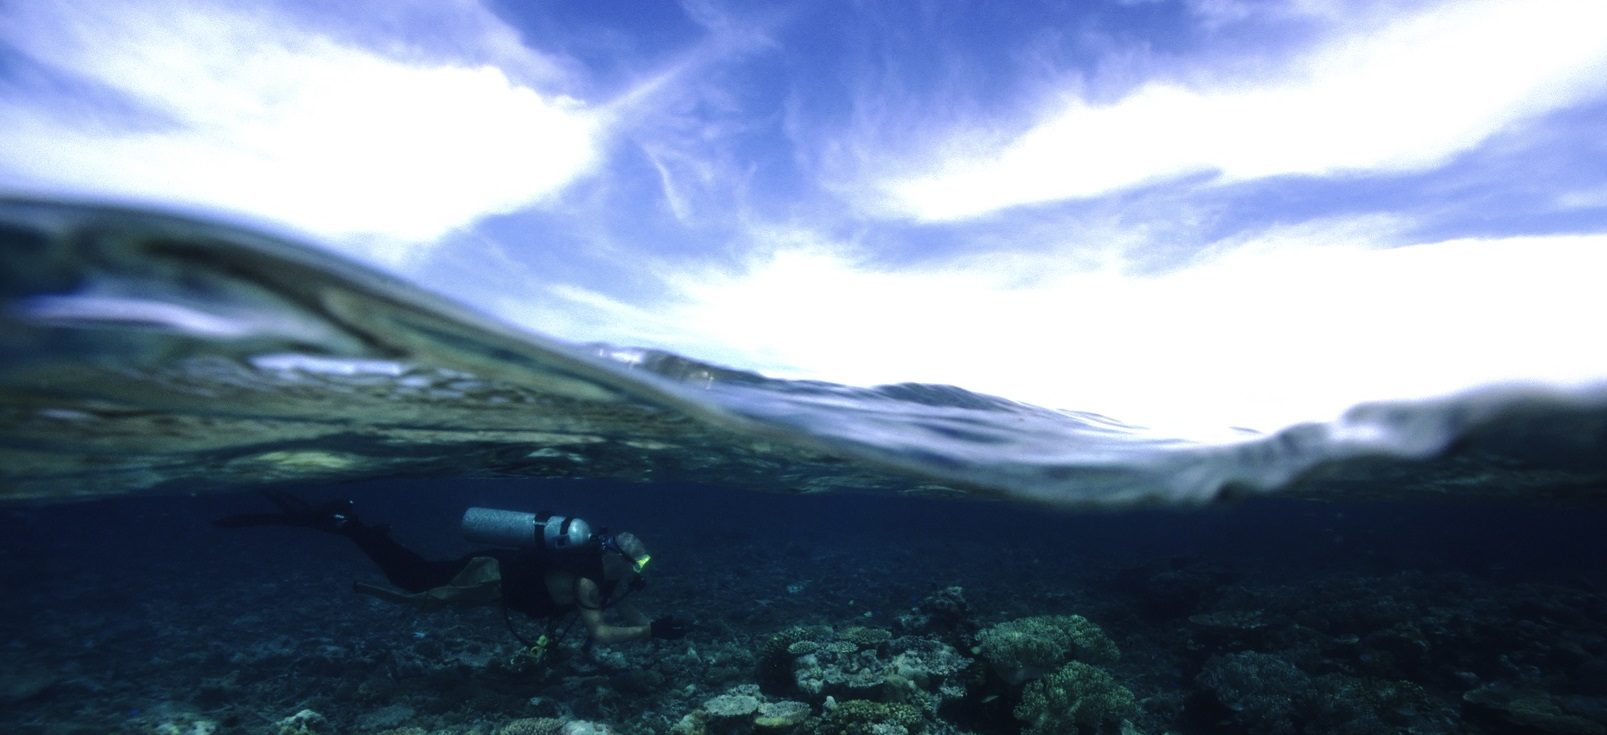 Above and below action shot of an underwater diver.